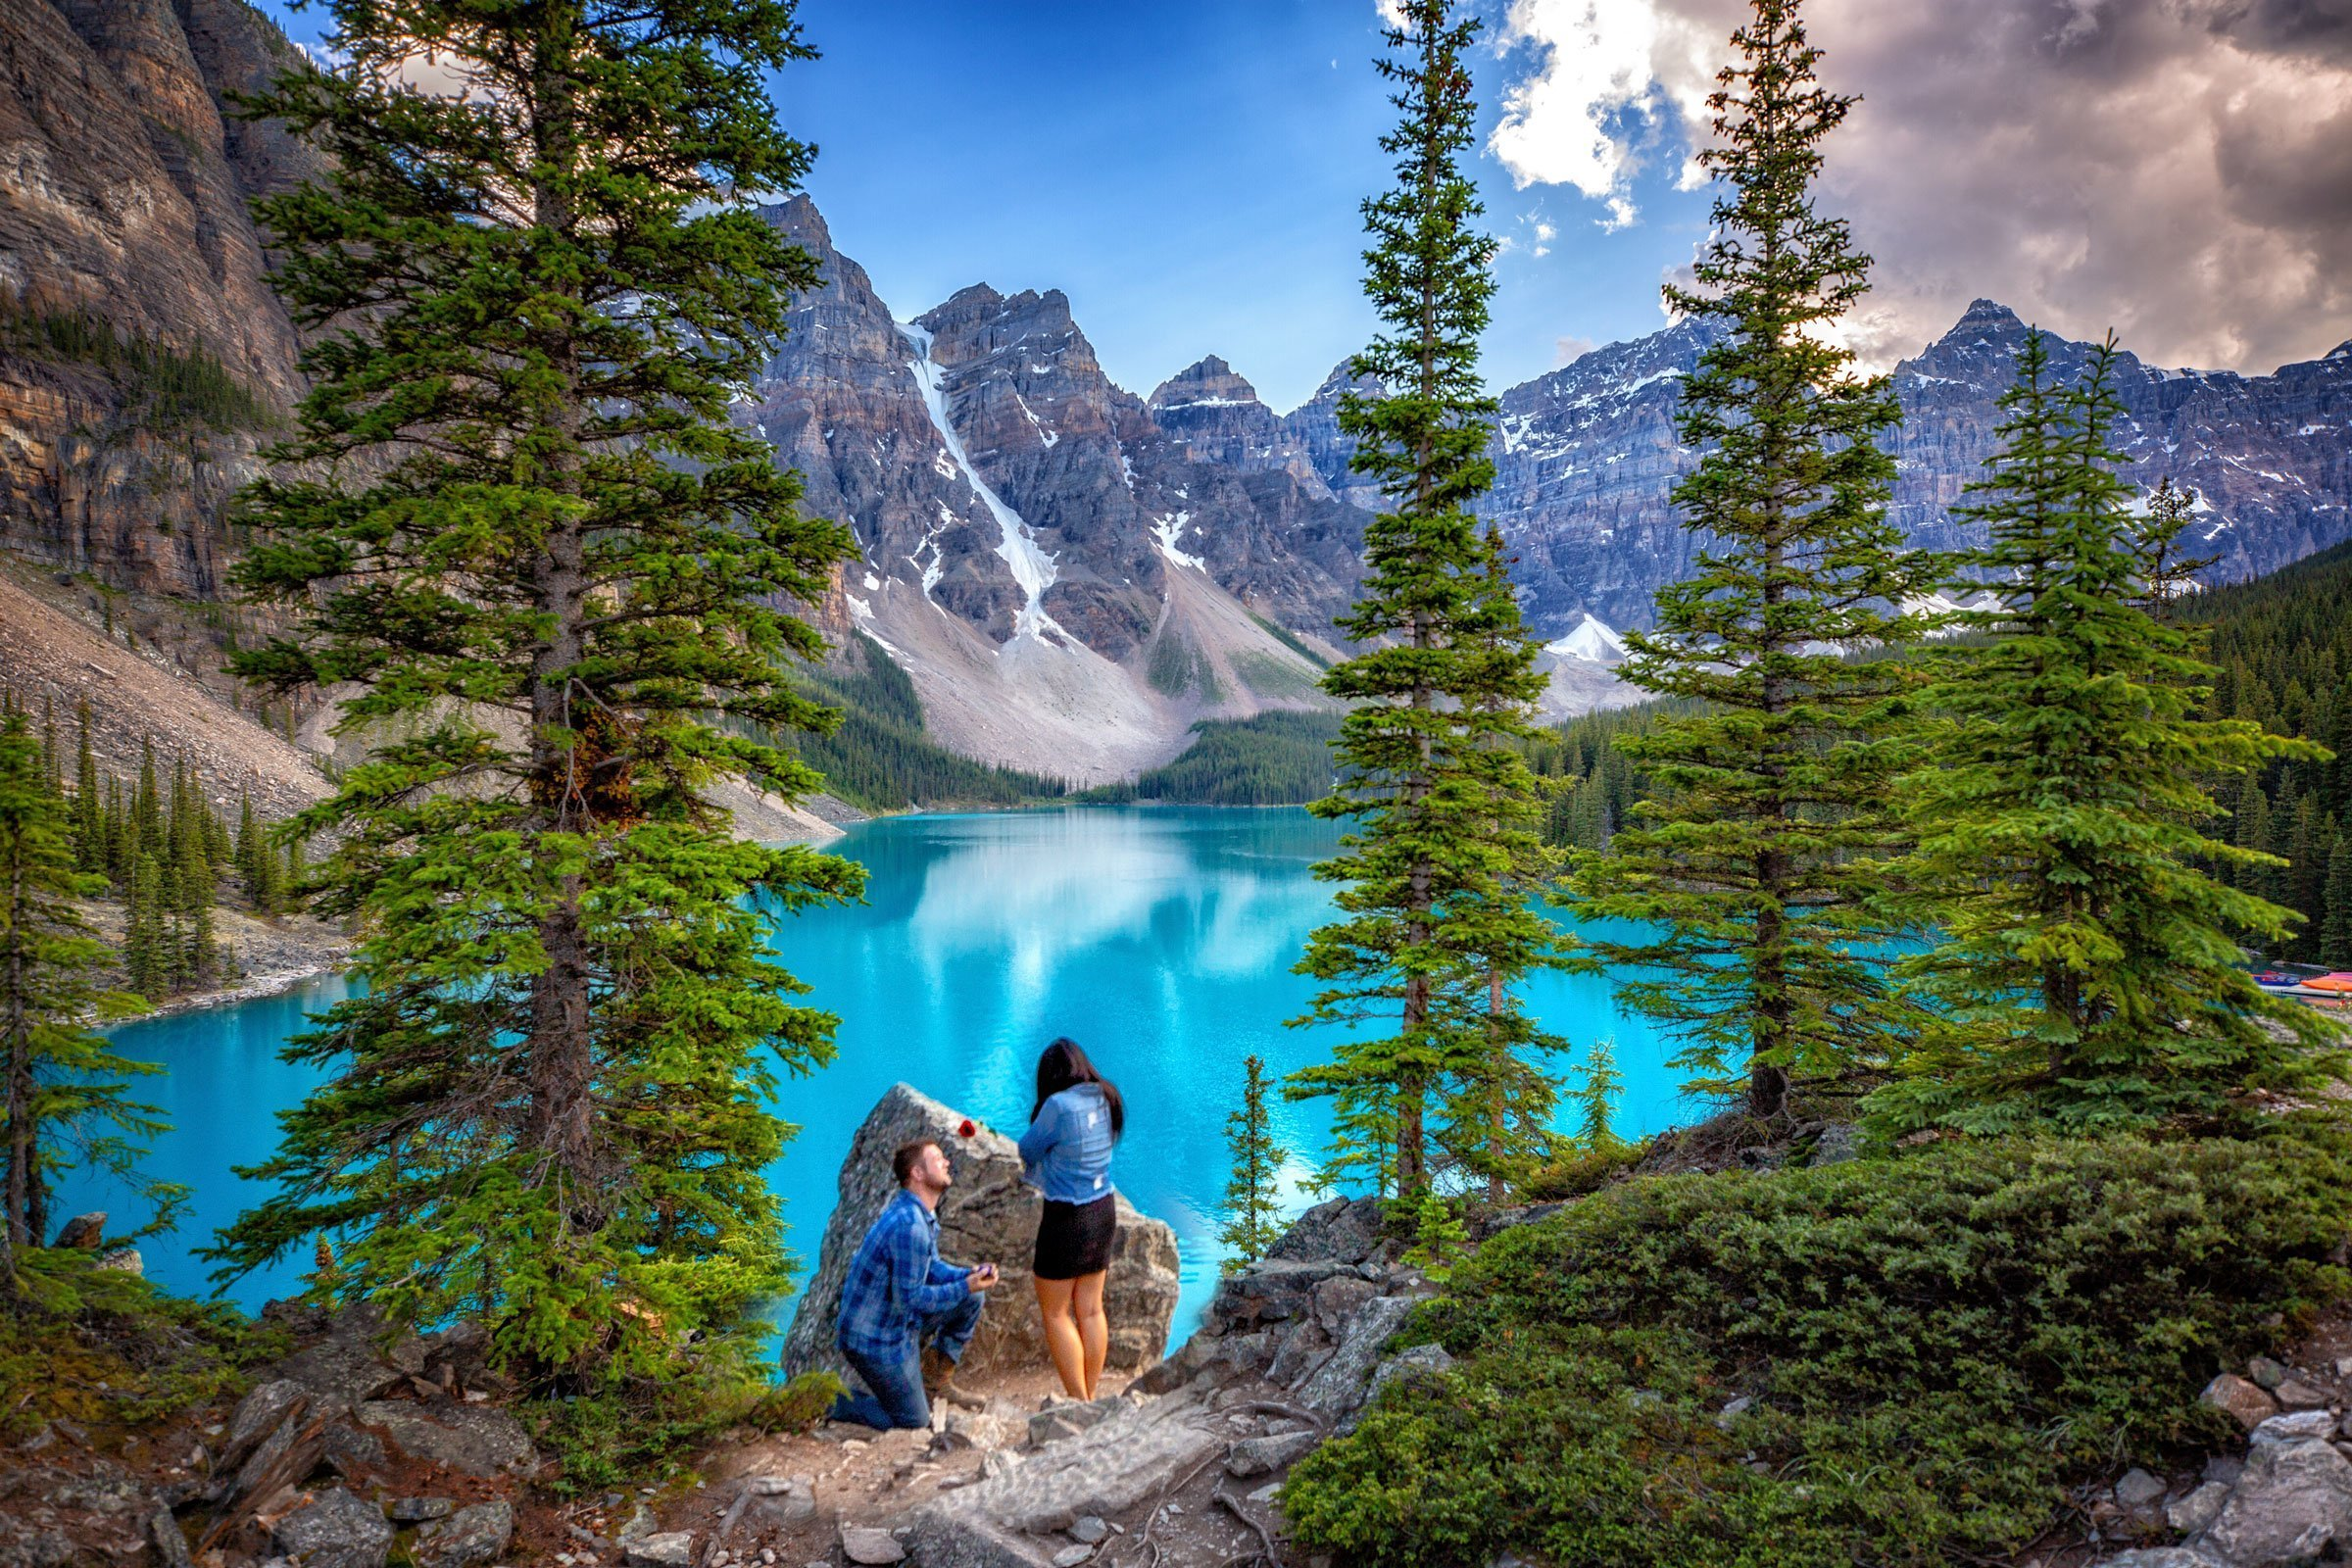 Proposal of Marriage at Moraine Lake.